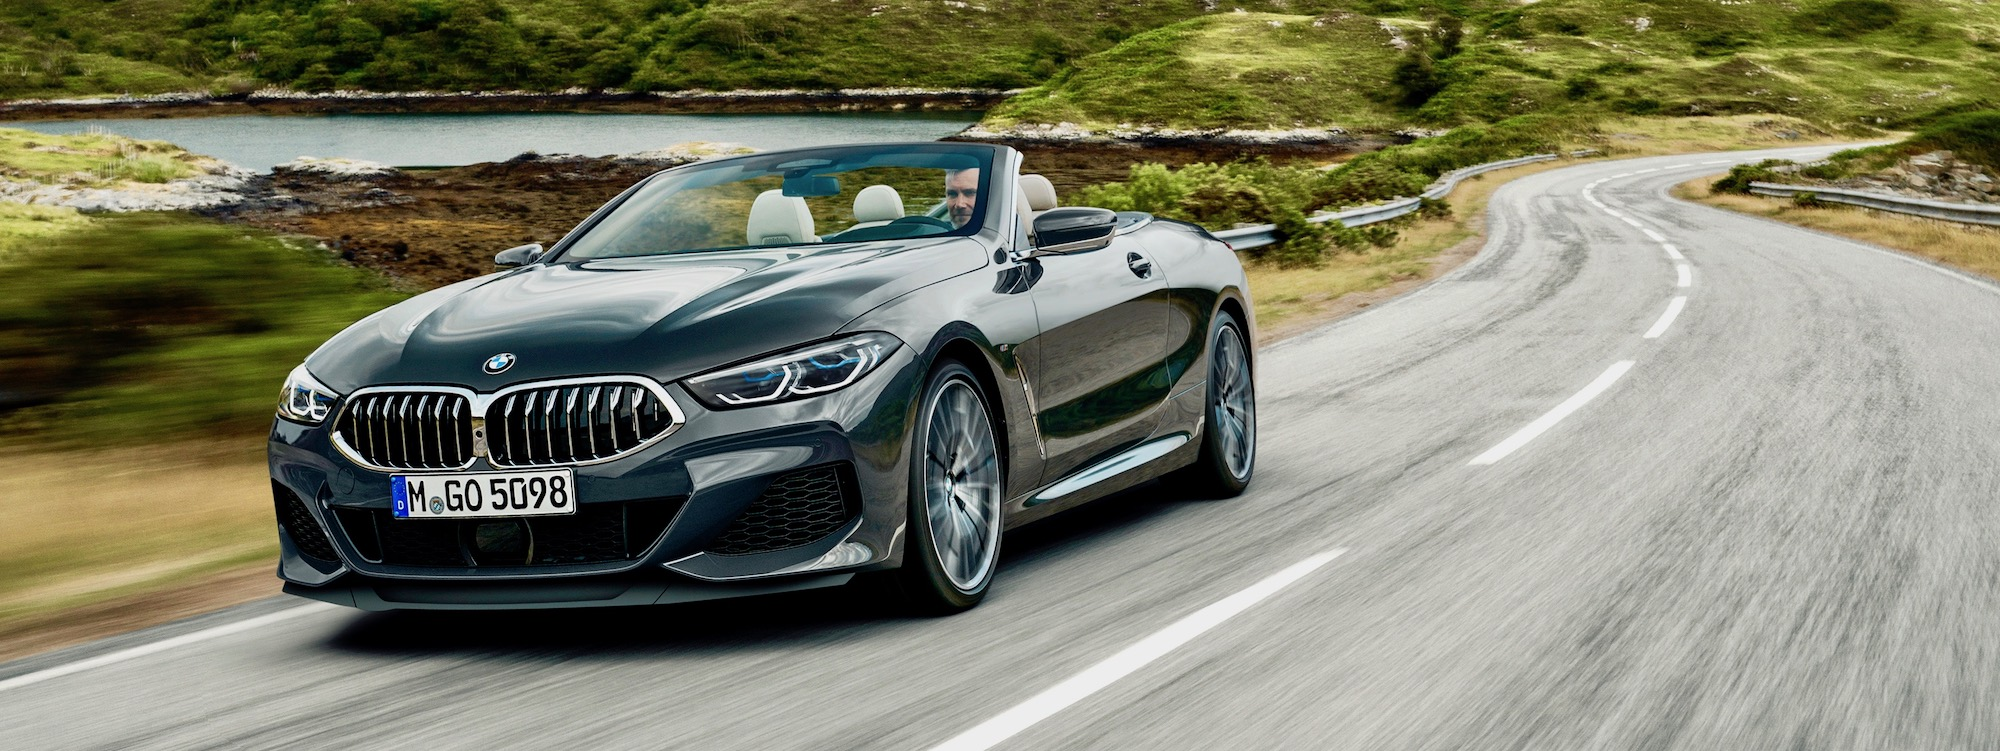 8 Of The Best BMW Convertible Lease Deals For November 2018